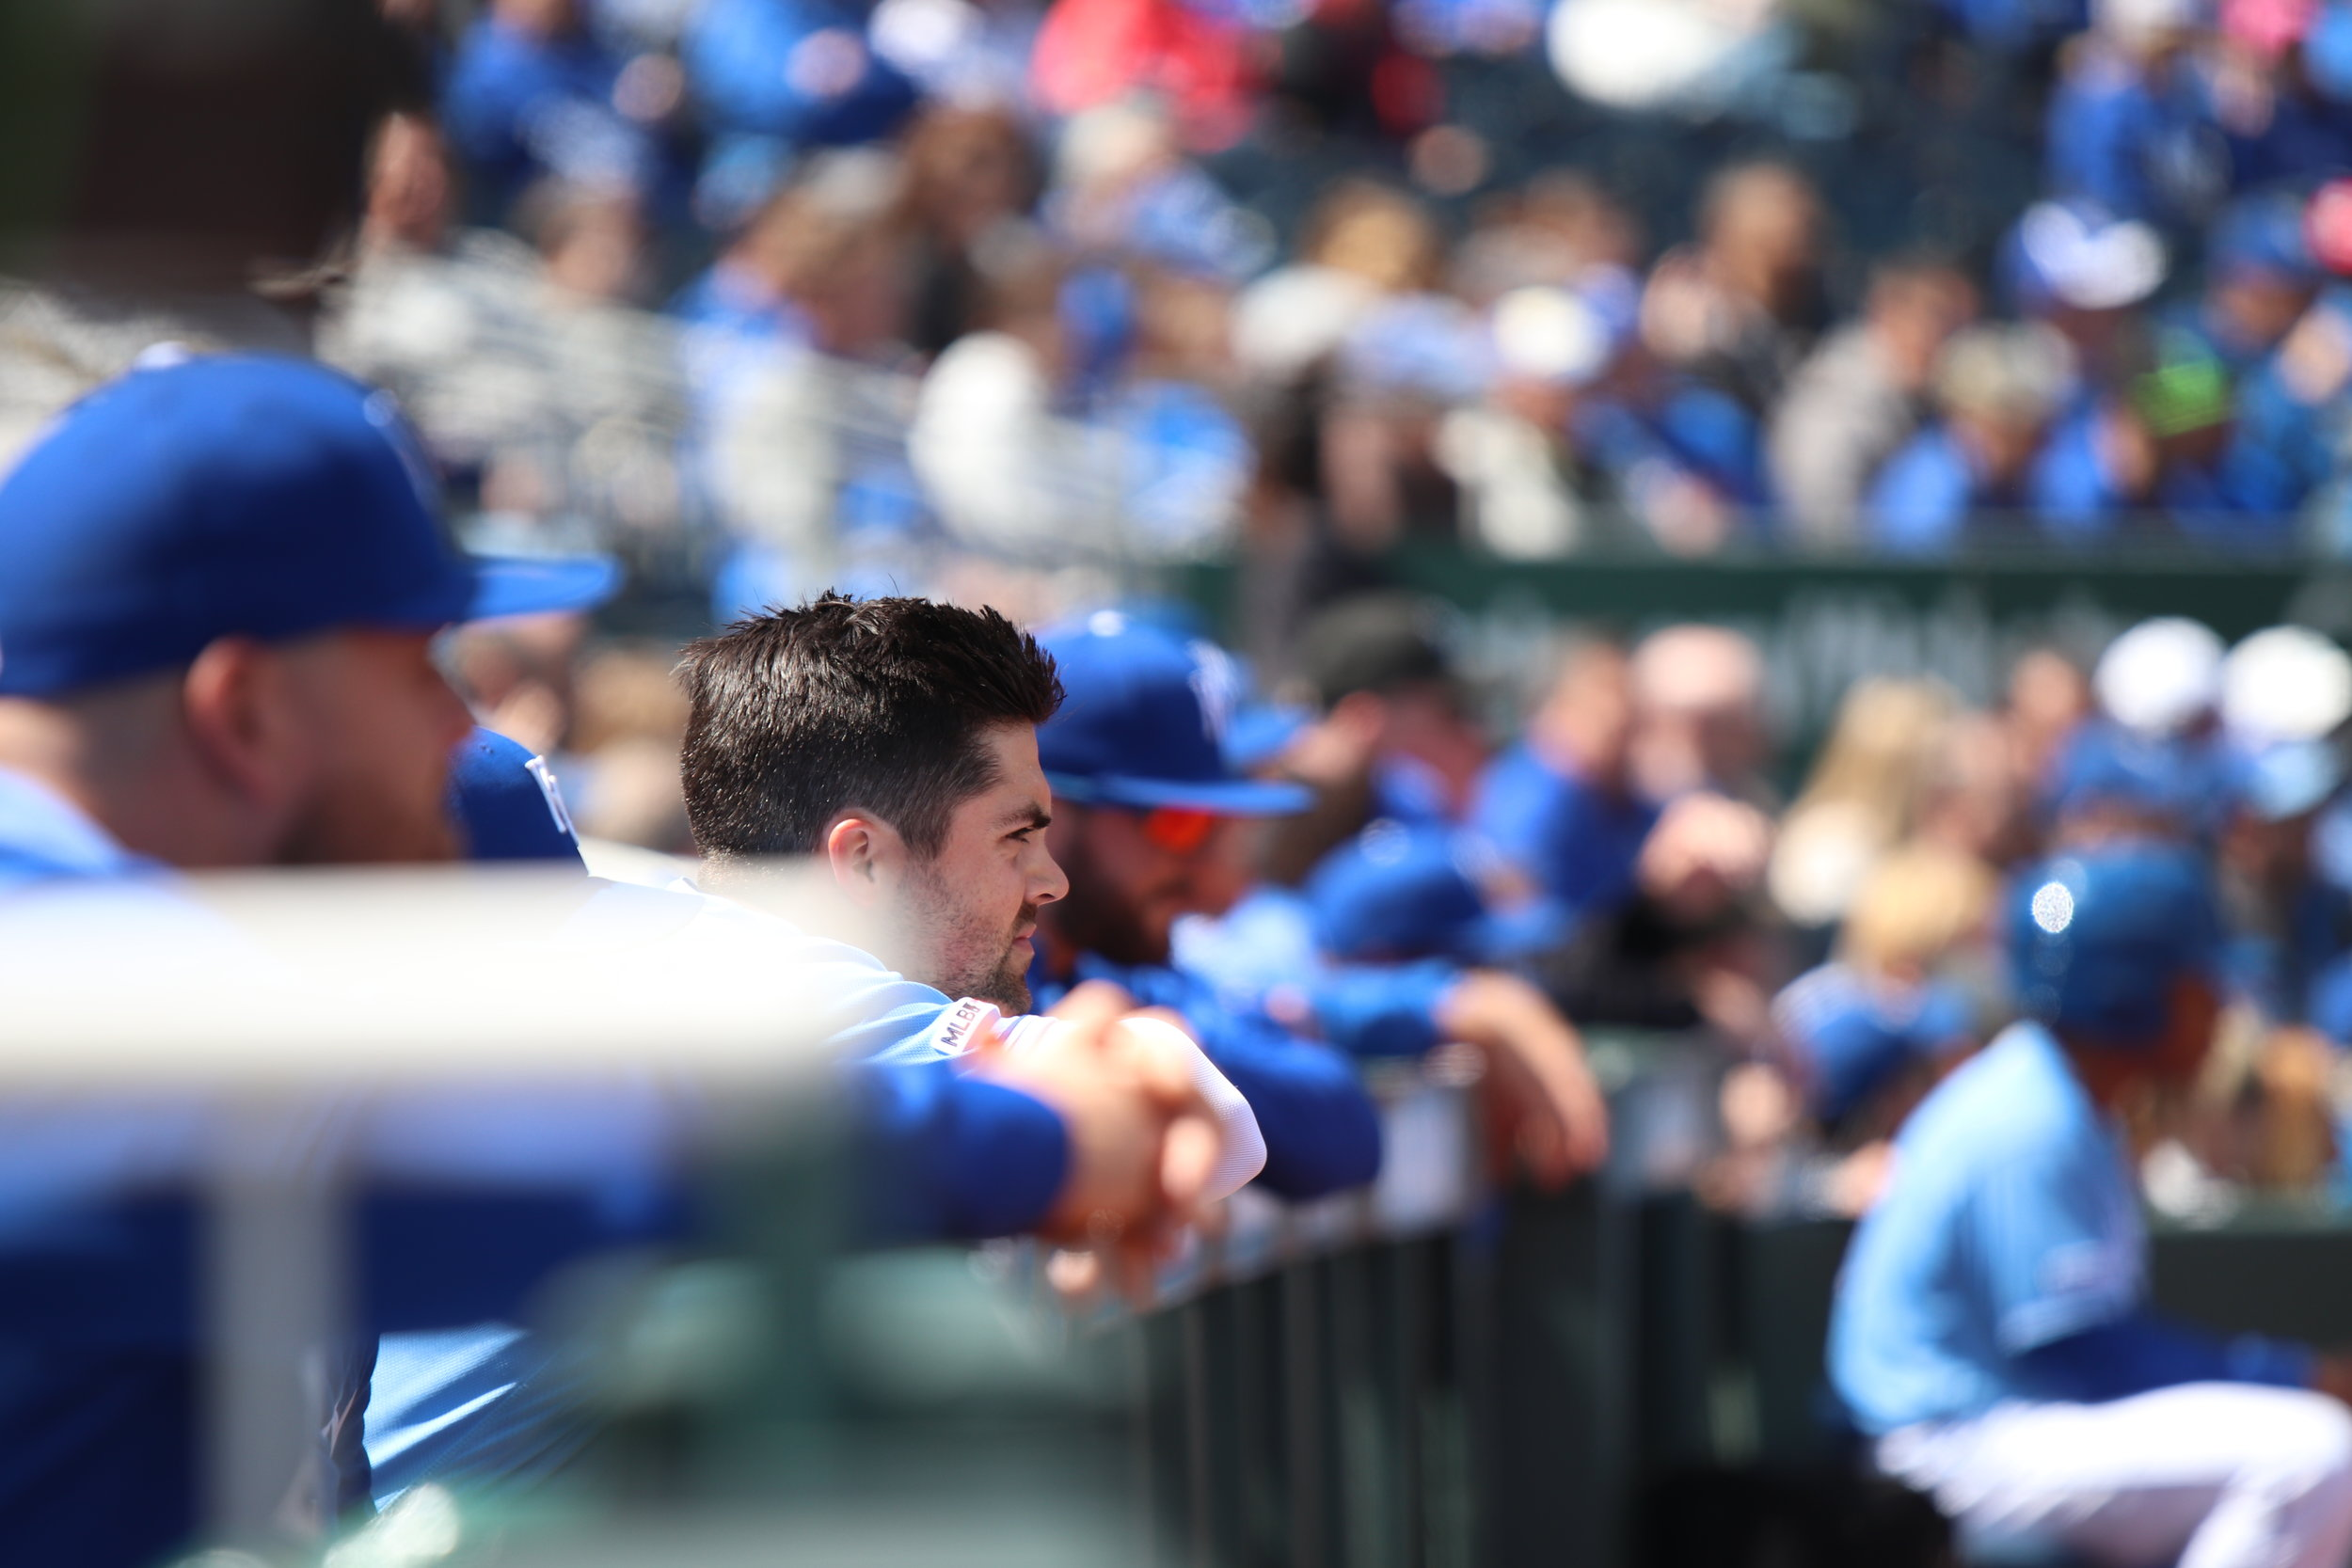 CODY THORN/Citizen photo Kansas City Royals outfielder Whit Merrifield watches from the dugout during a game against the Seattle Mariners on Thursday, April 11 at Kauffman Stadium in Kansas City.